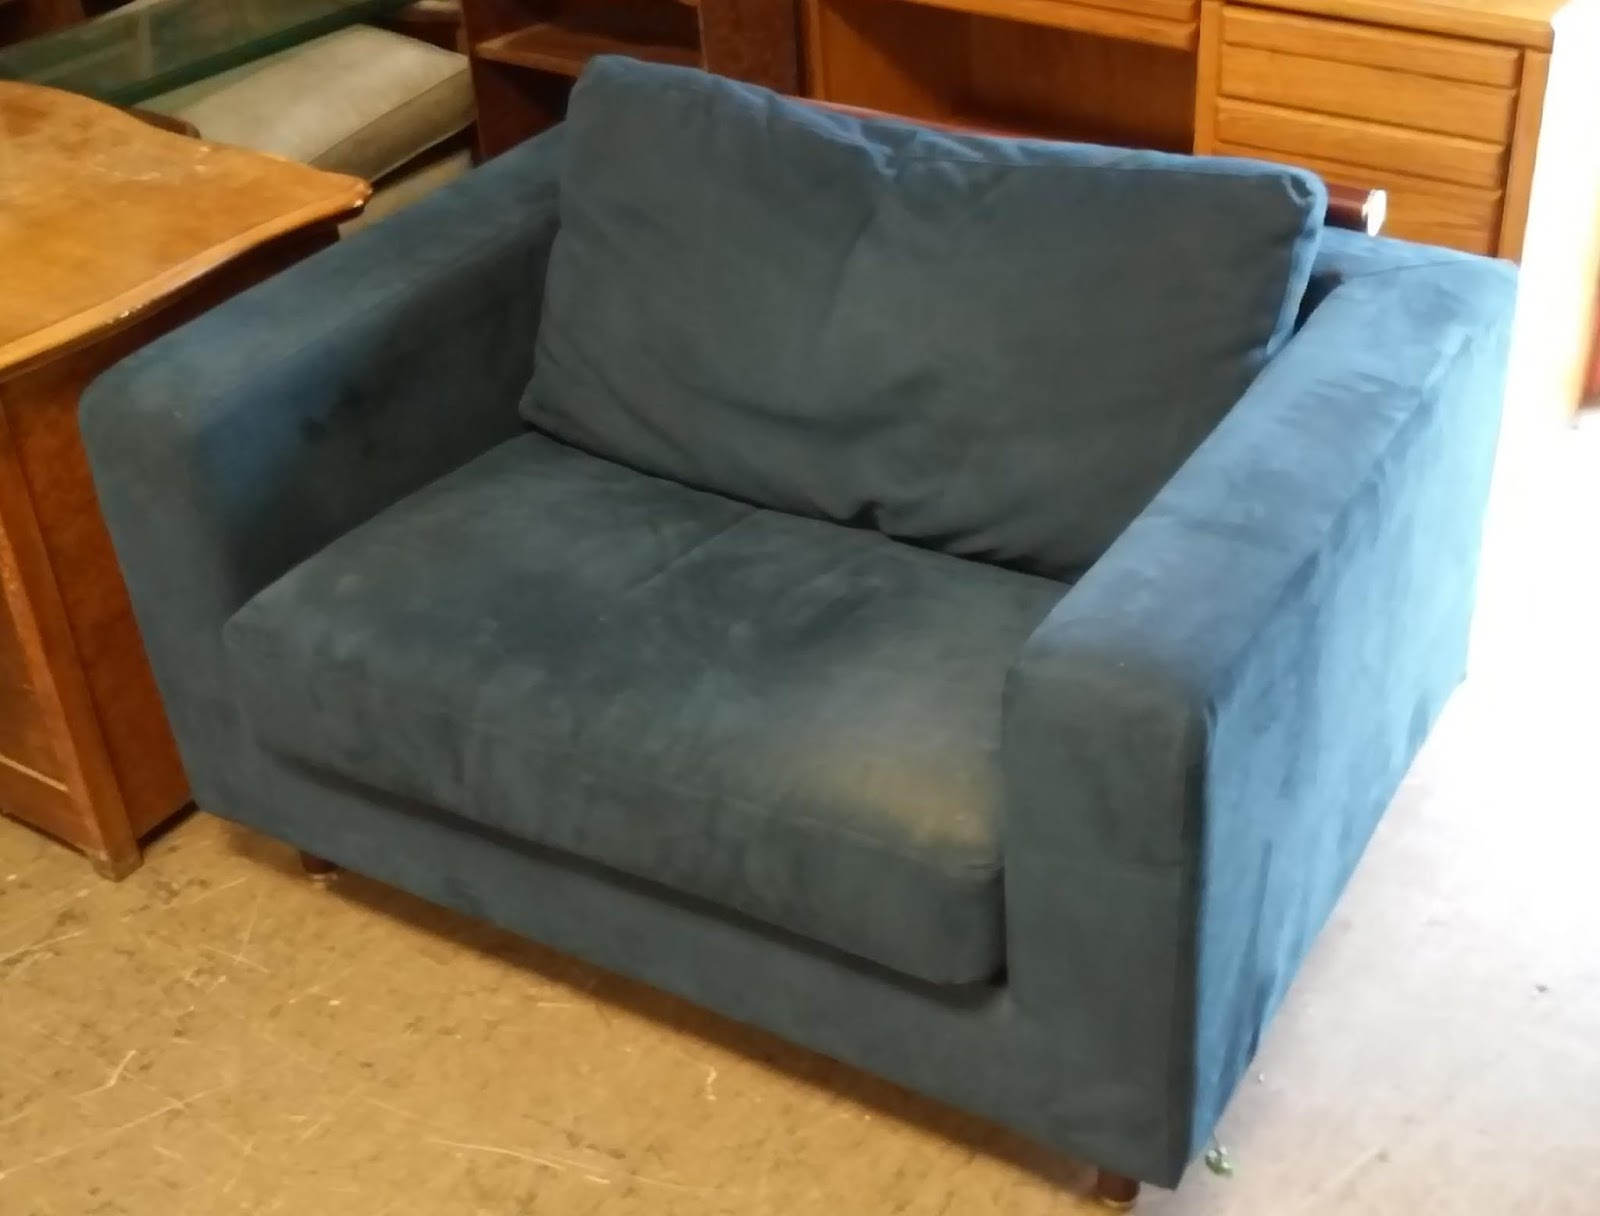 UHURU FURNITURE & COLLECTIBLES: SOLD Midnight Blue Chair